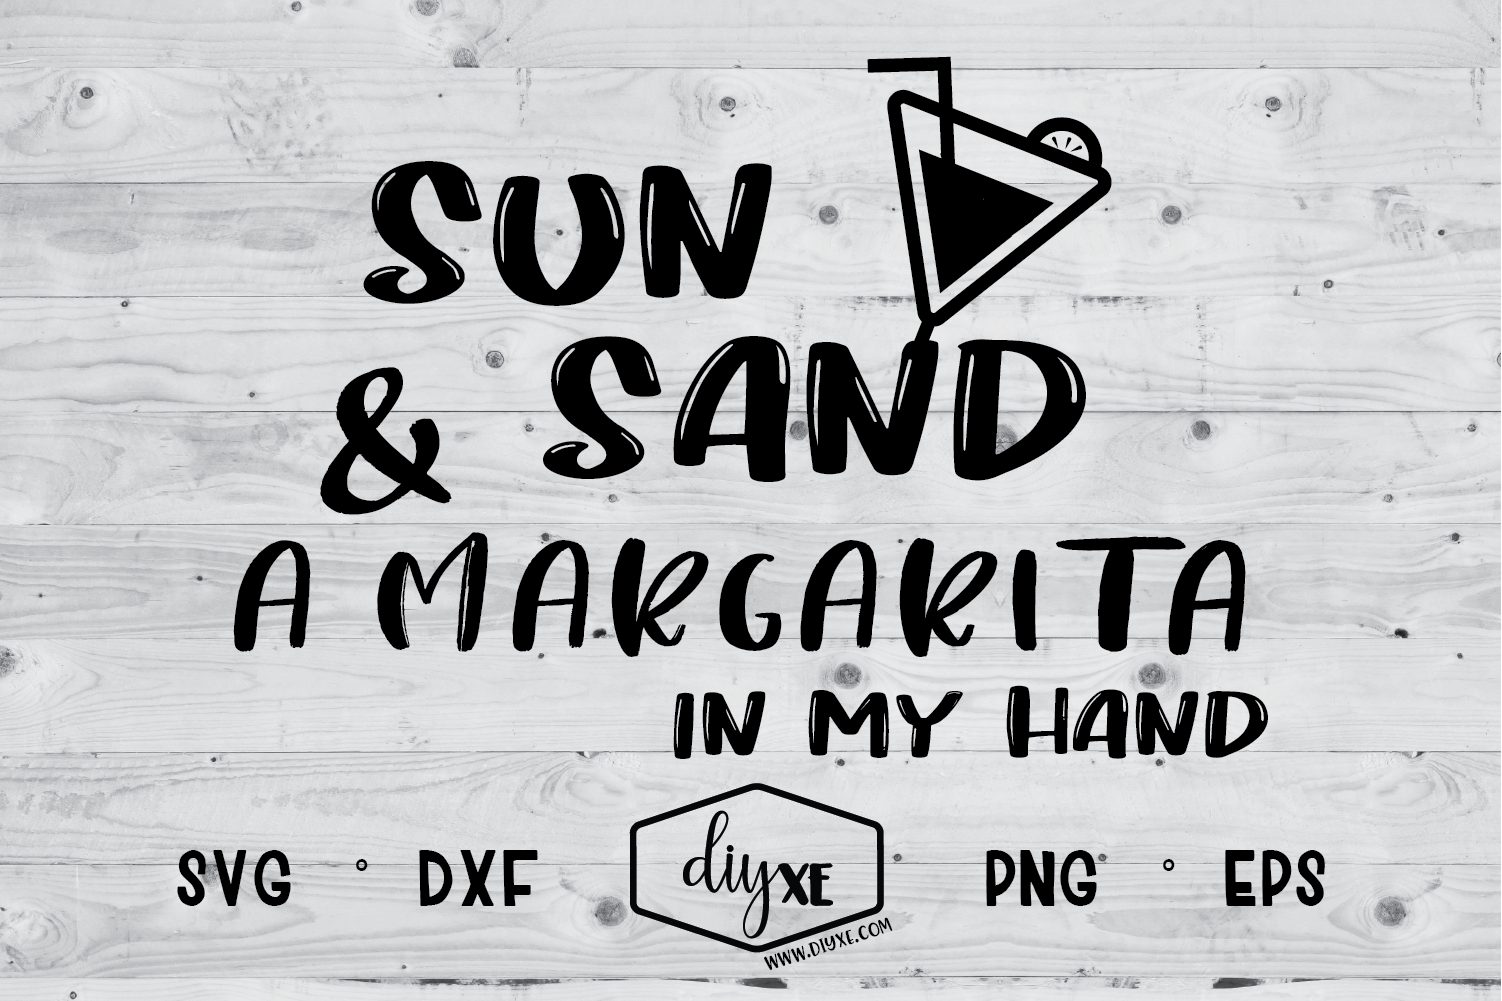 Download Free Sun Sand Margarita In My Hand Graphic By Sheryl Holst for Cricut Explore, Silhouette and other cutting machines.